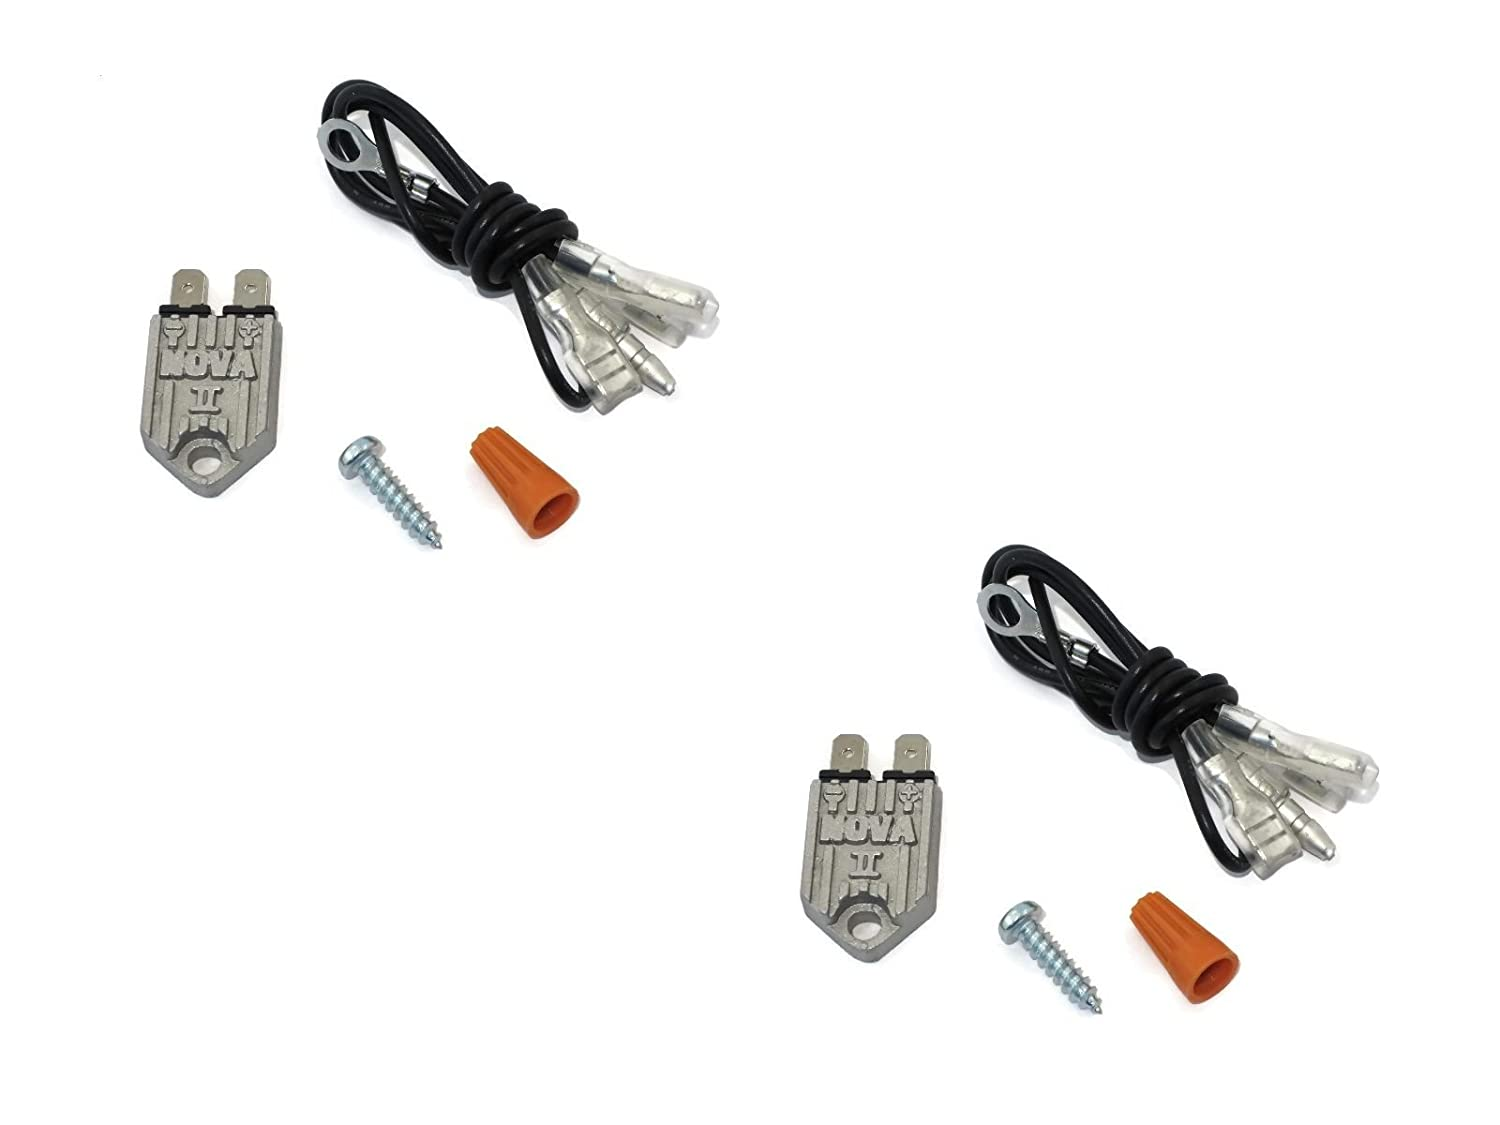 The ROP Shop (2) New NOVA II Electronic Transistorized Ignition Modules/Igniter Assembly